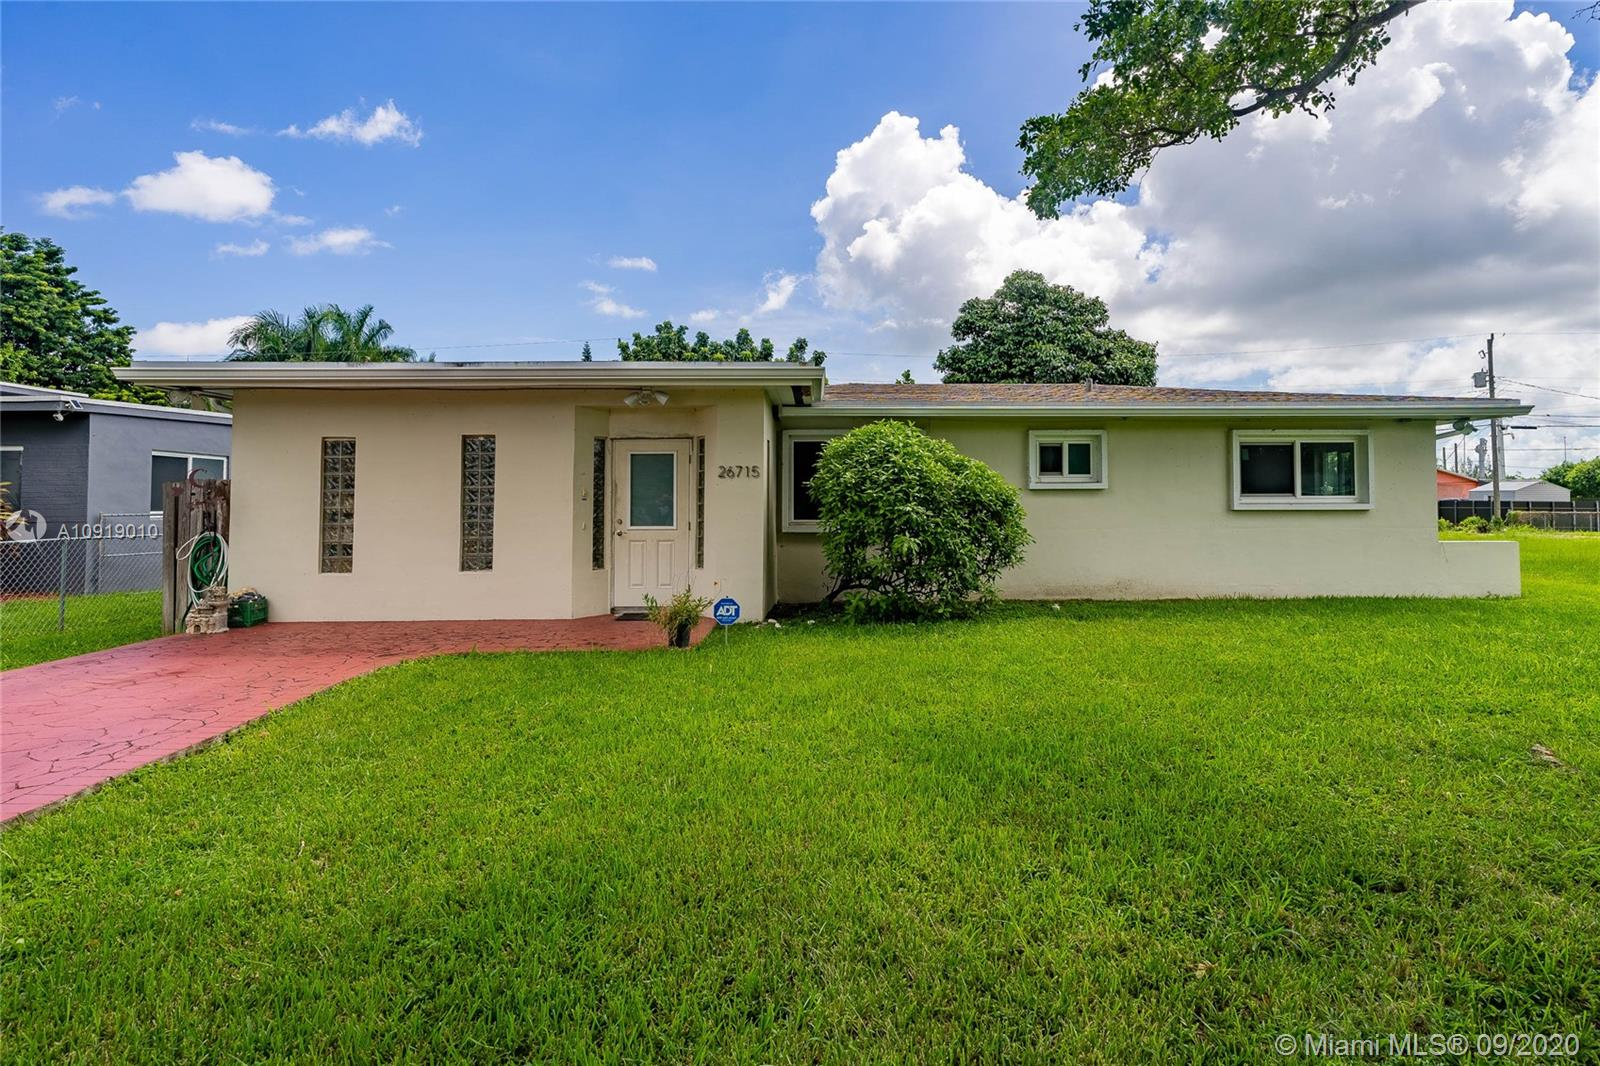 26715 SW 133rd Ct Property Photo - Homestead, FL real estate listing